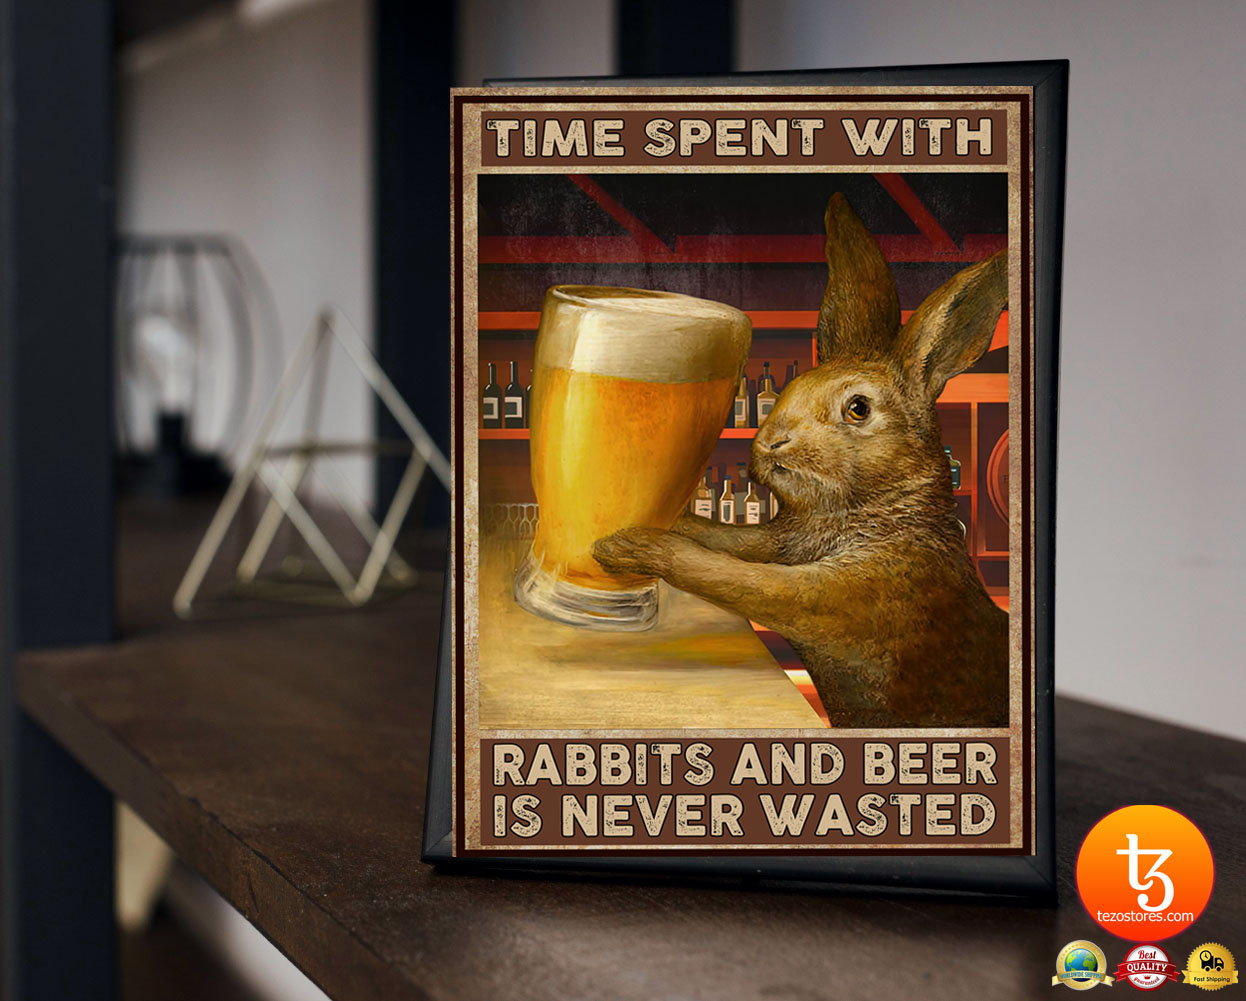 Time spent with rabbits and beer is never wasted poster 19